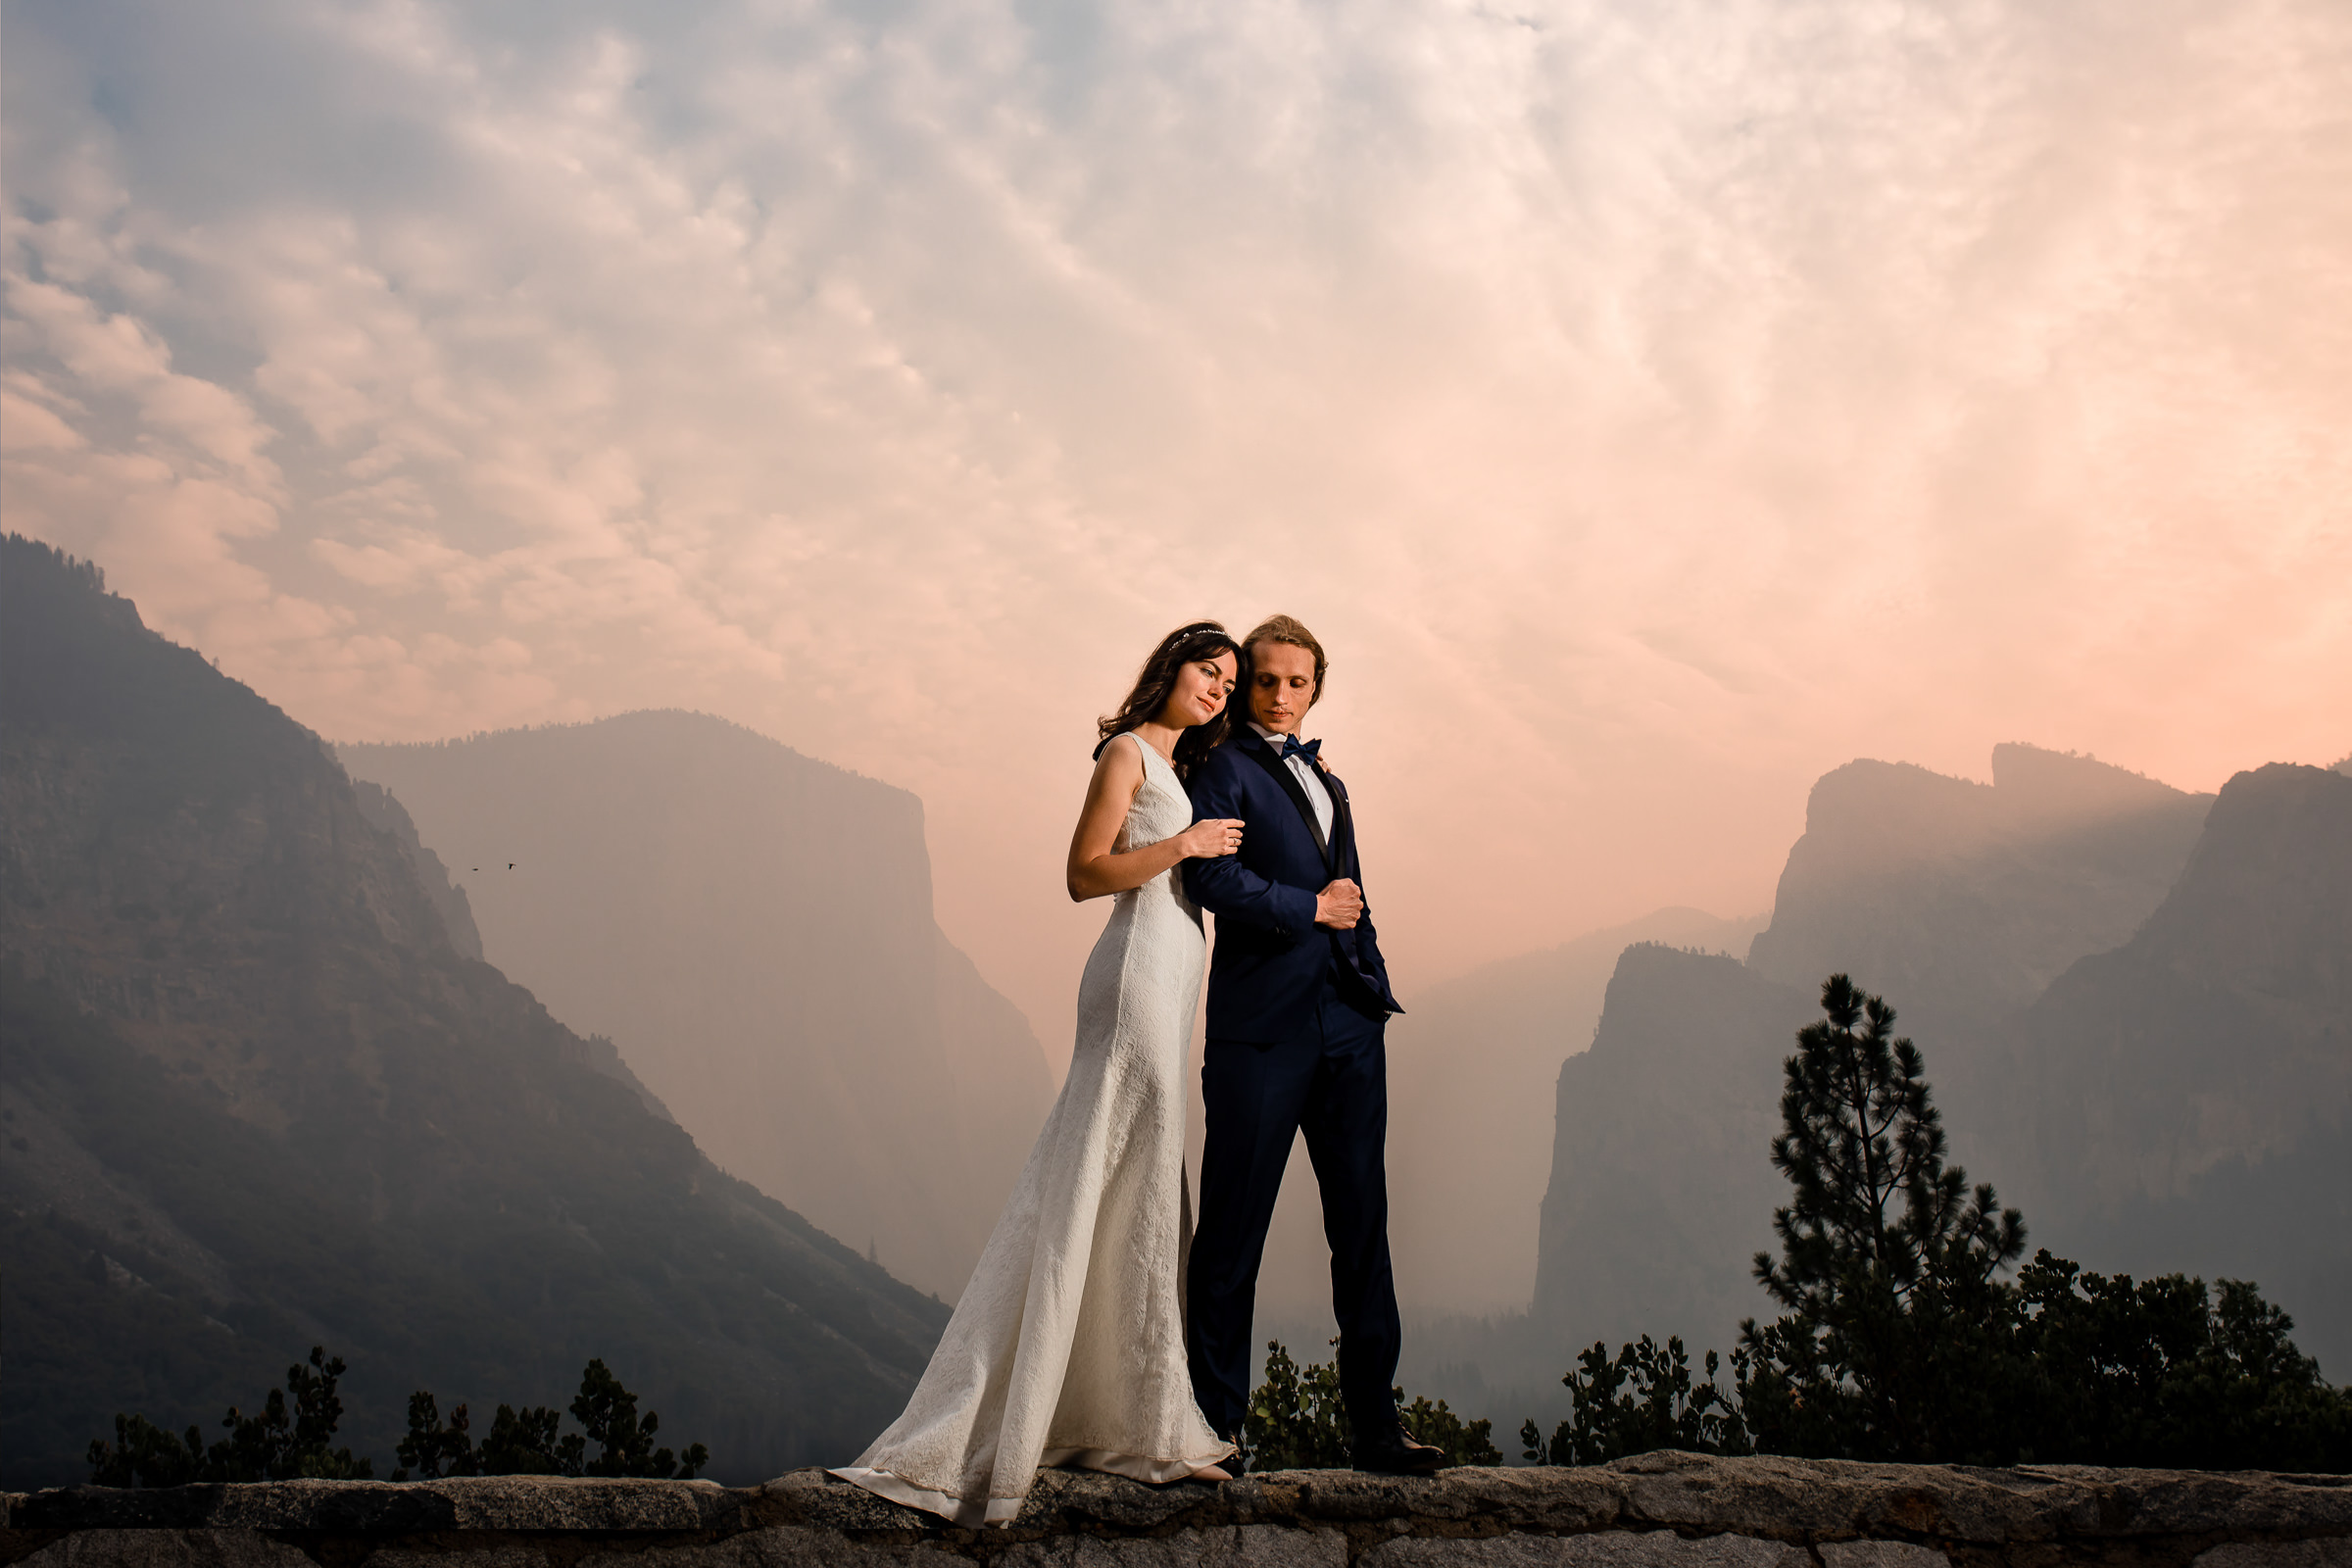 Portrait of couple at Yosemite Park by Marlies Hartmann of Los Angeles